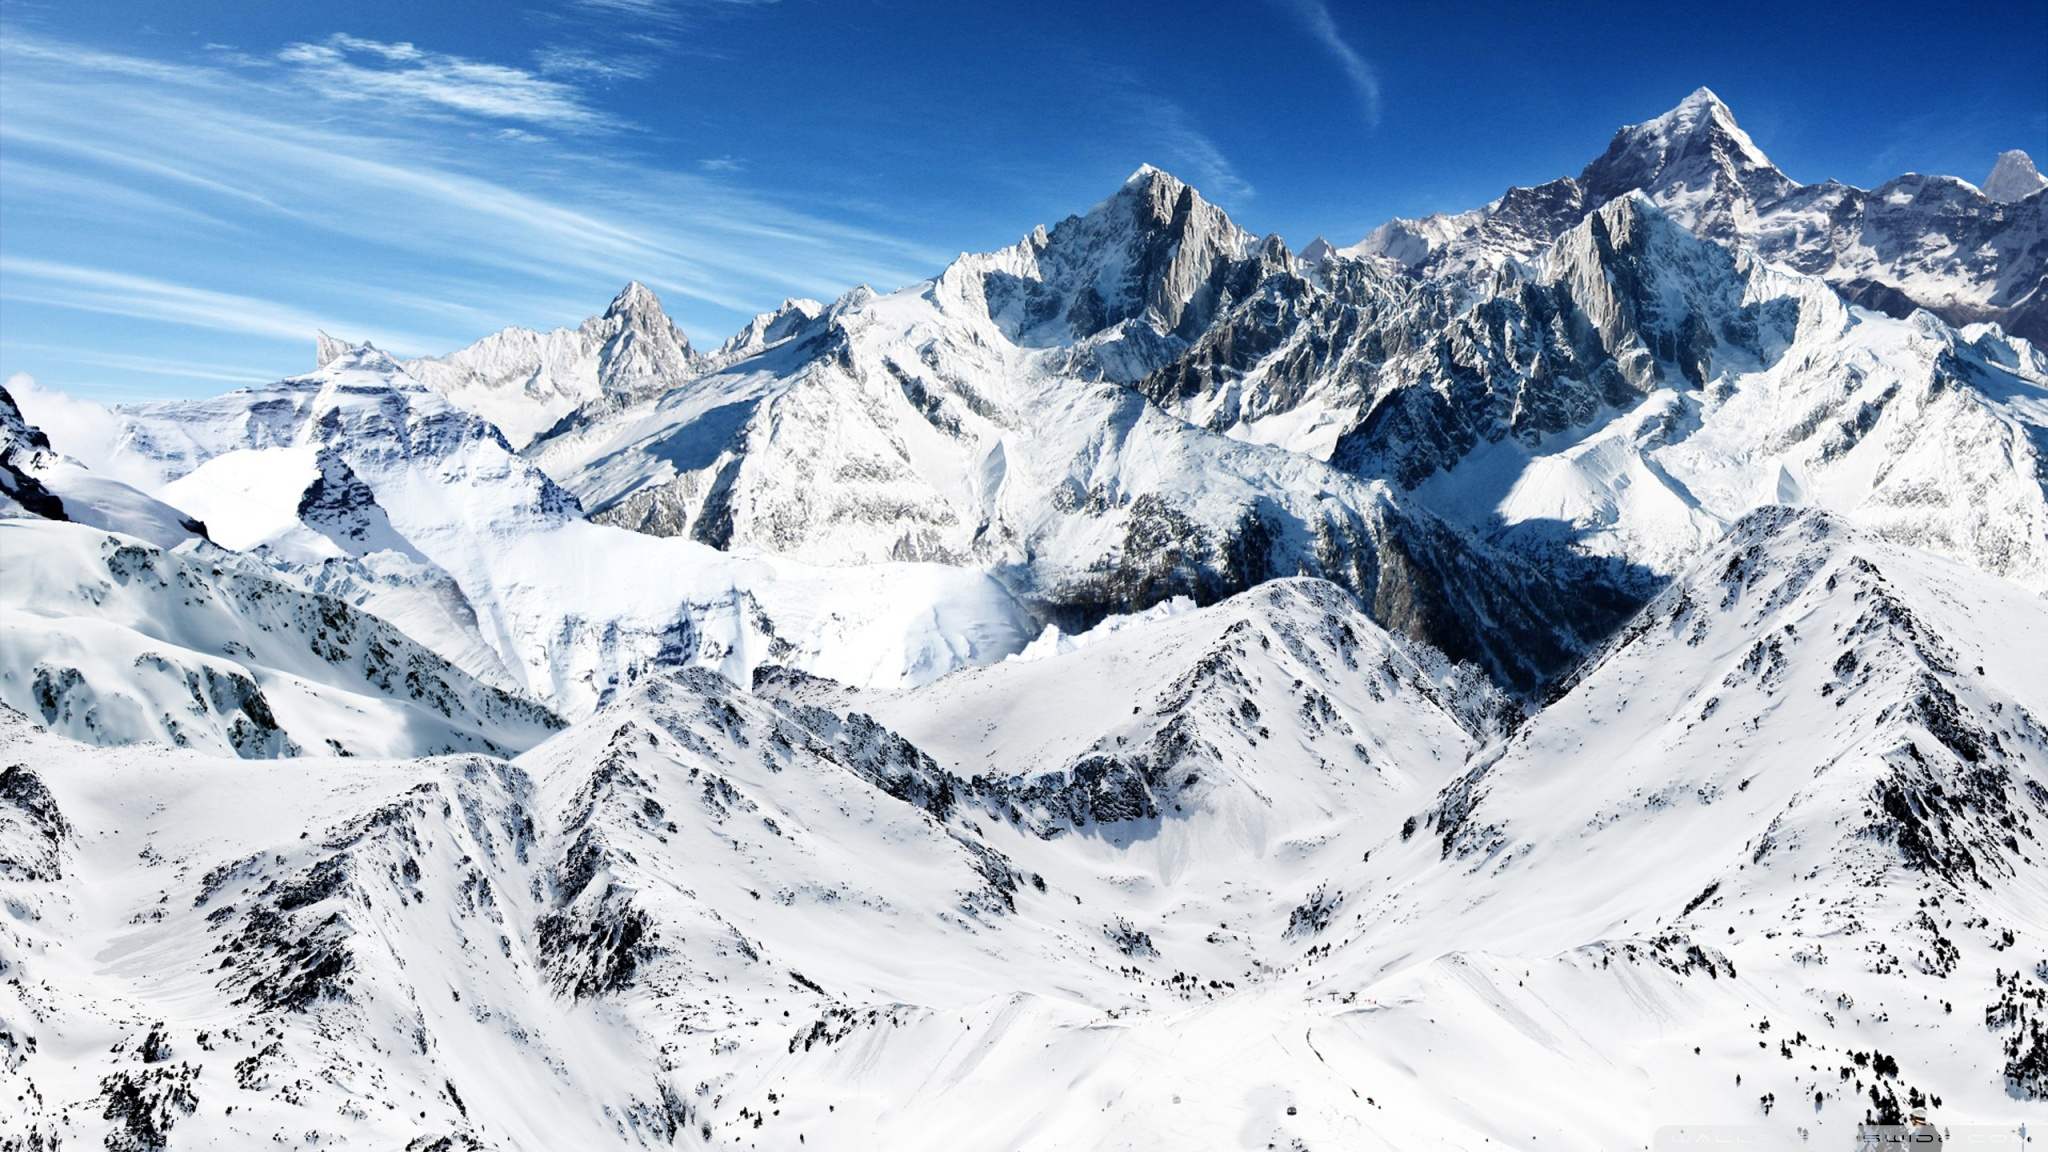 Snowy Mountain Wallpaper